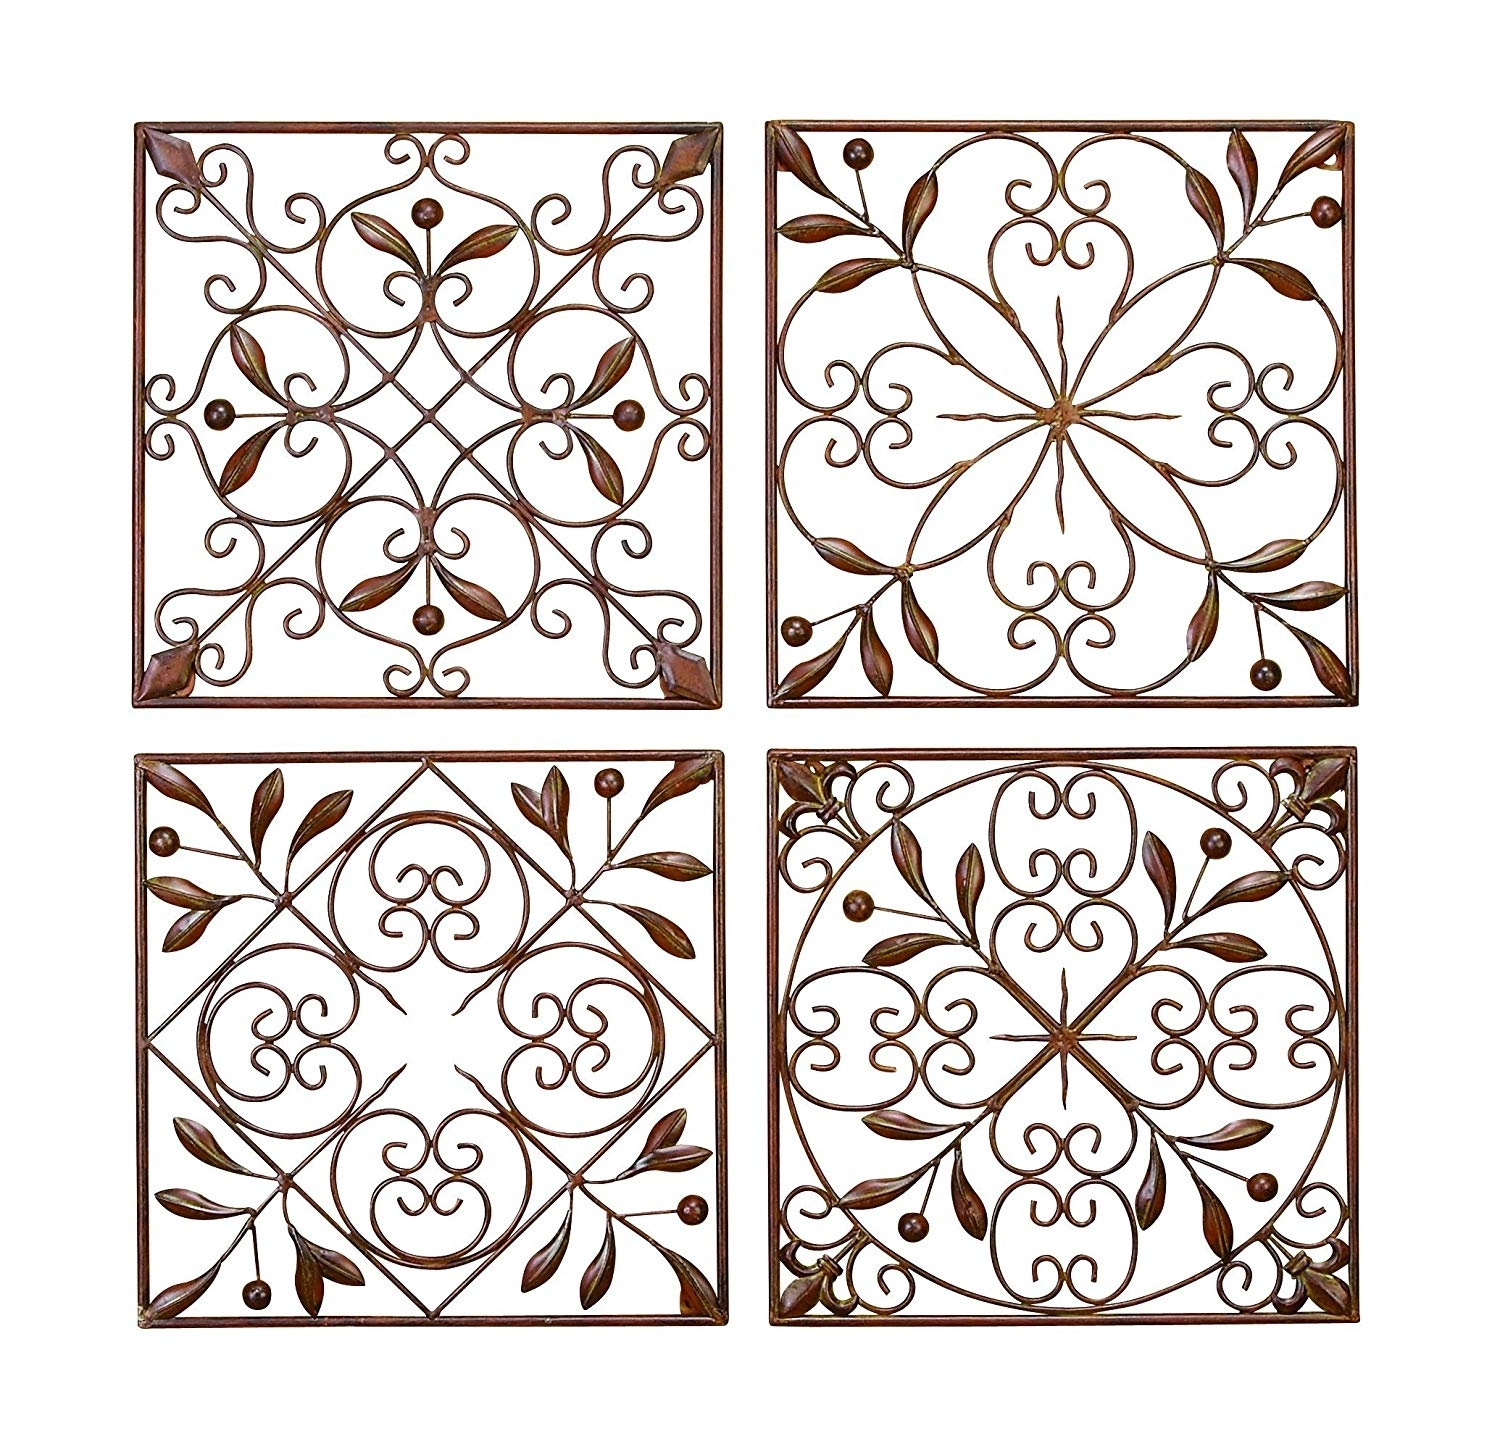 Amazon: Deco 79 50035 Metal Wall Decor Set Of 4: Home & Kitchen Intended For Cheap Metal Wall Art (View 1 of 20)